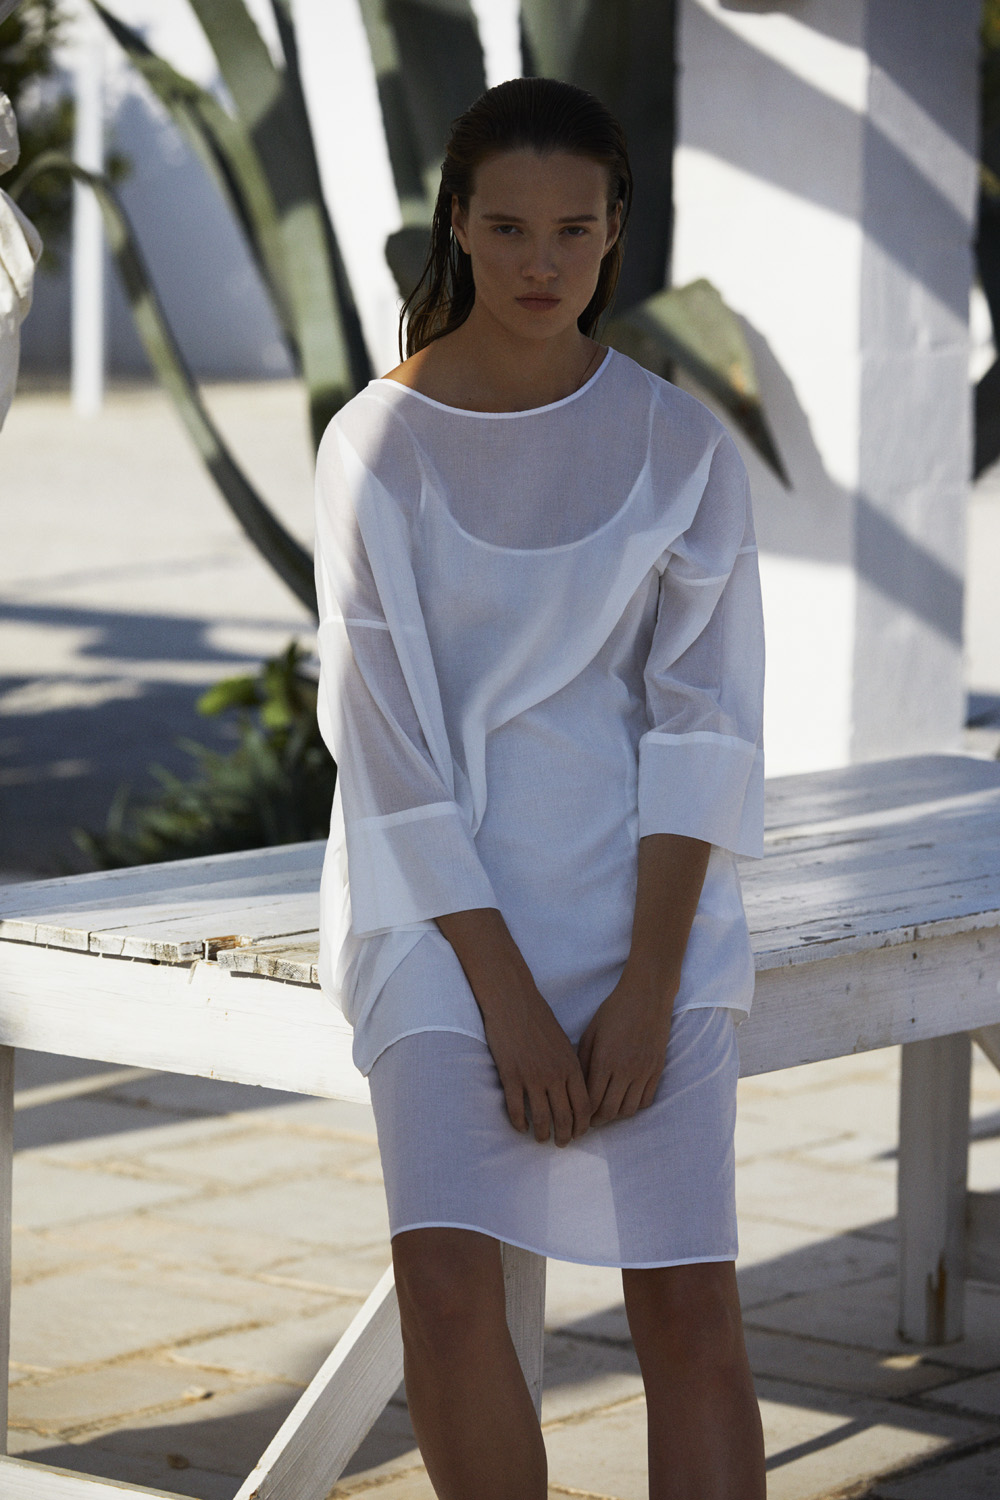 9. kép: Max Mara Beach Wear